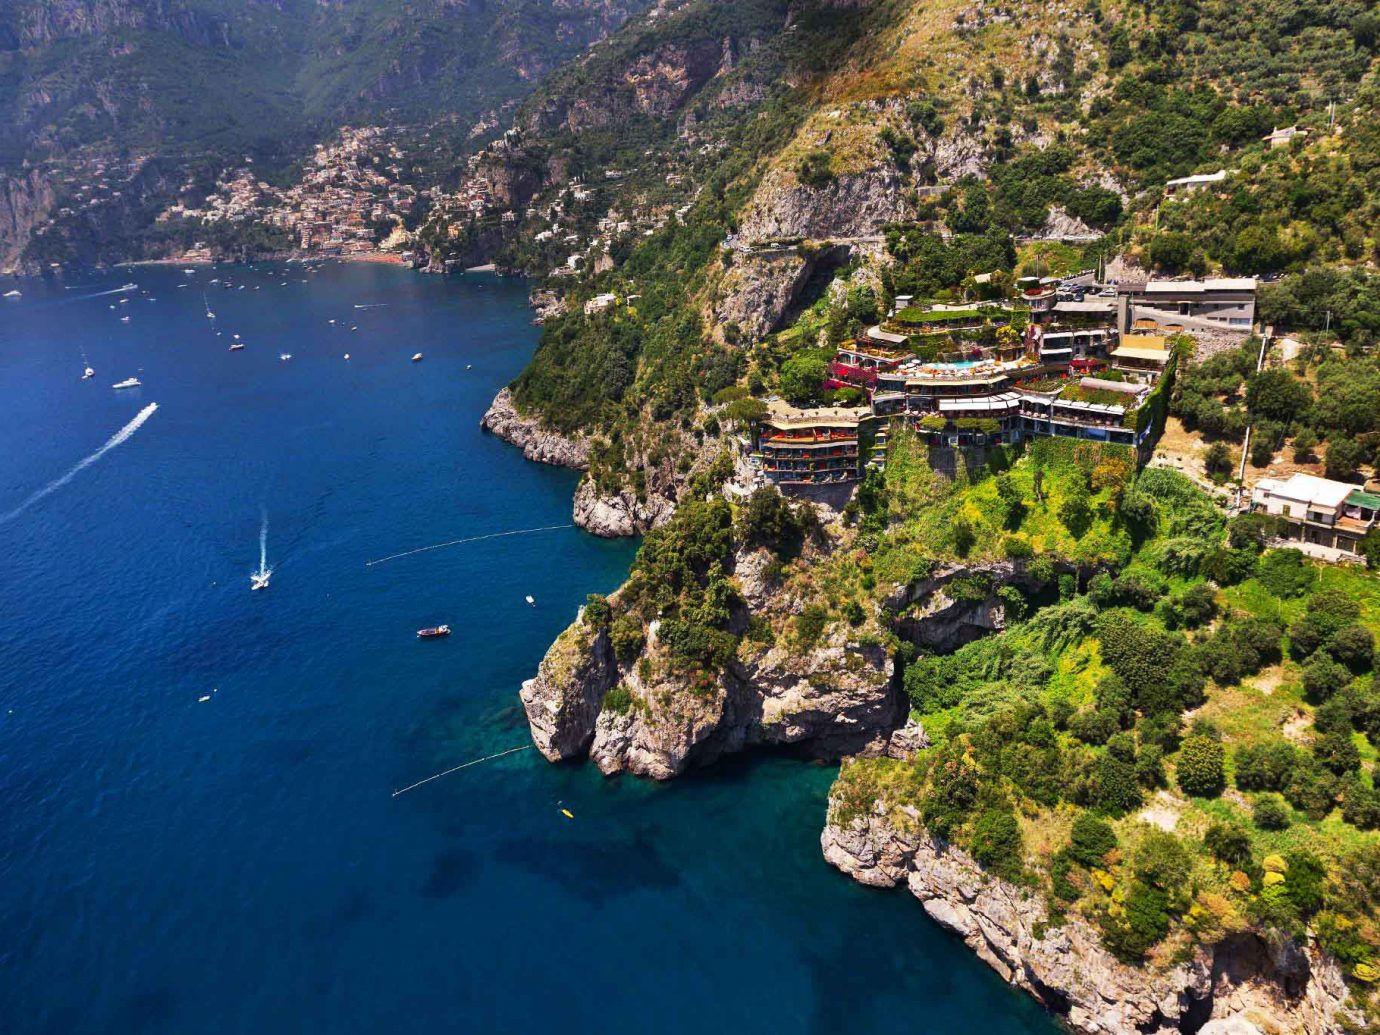 Hotels water mountain outdoor aerial photography Nature Coast geographical feature landform Sea archipelago bay cape fjord cliff cove islet Lake terrain Island hillside surrounded